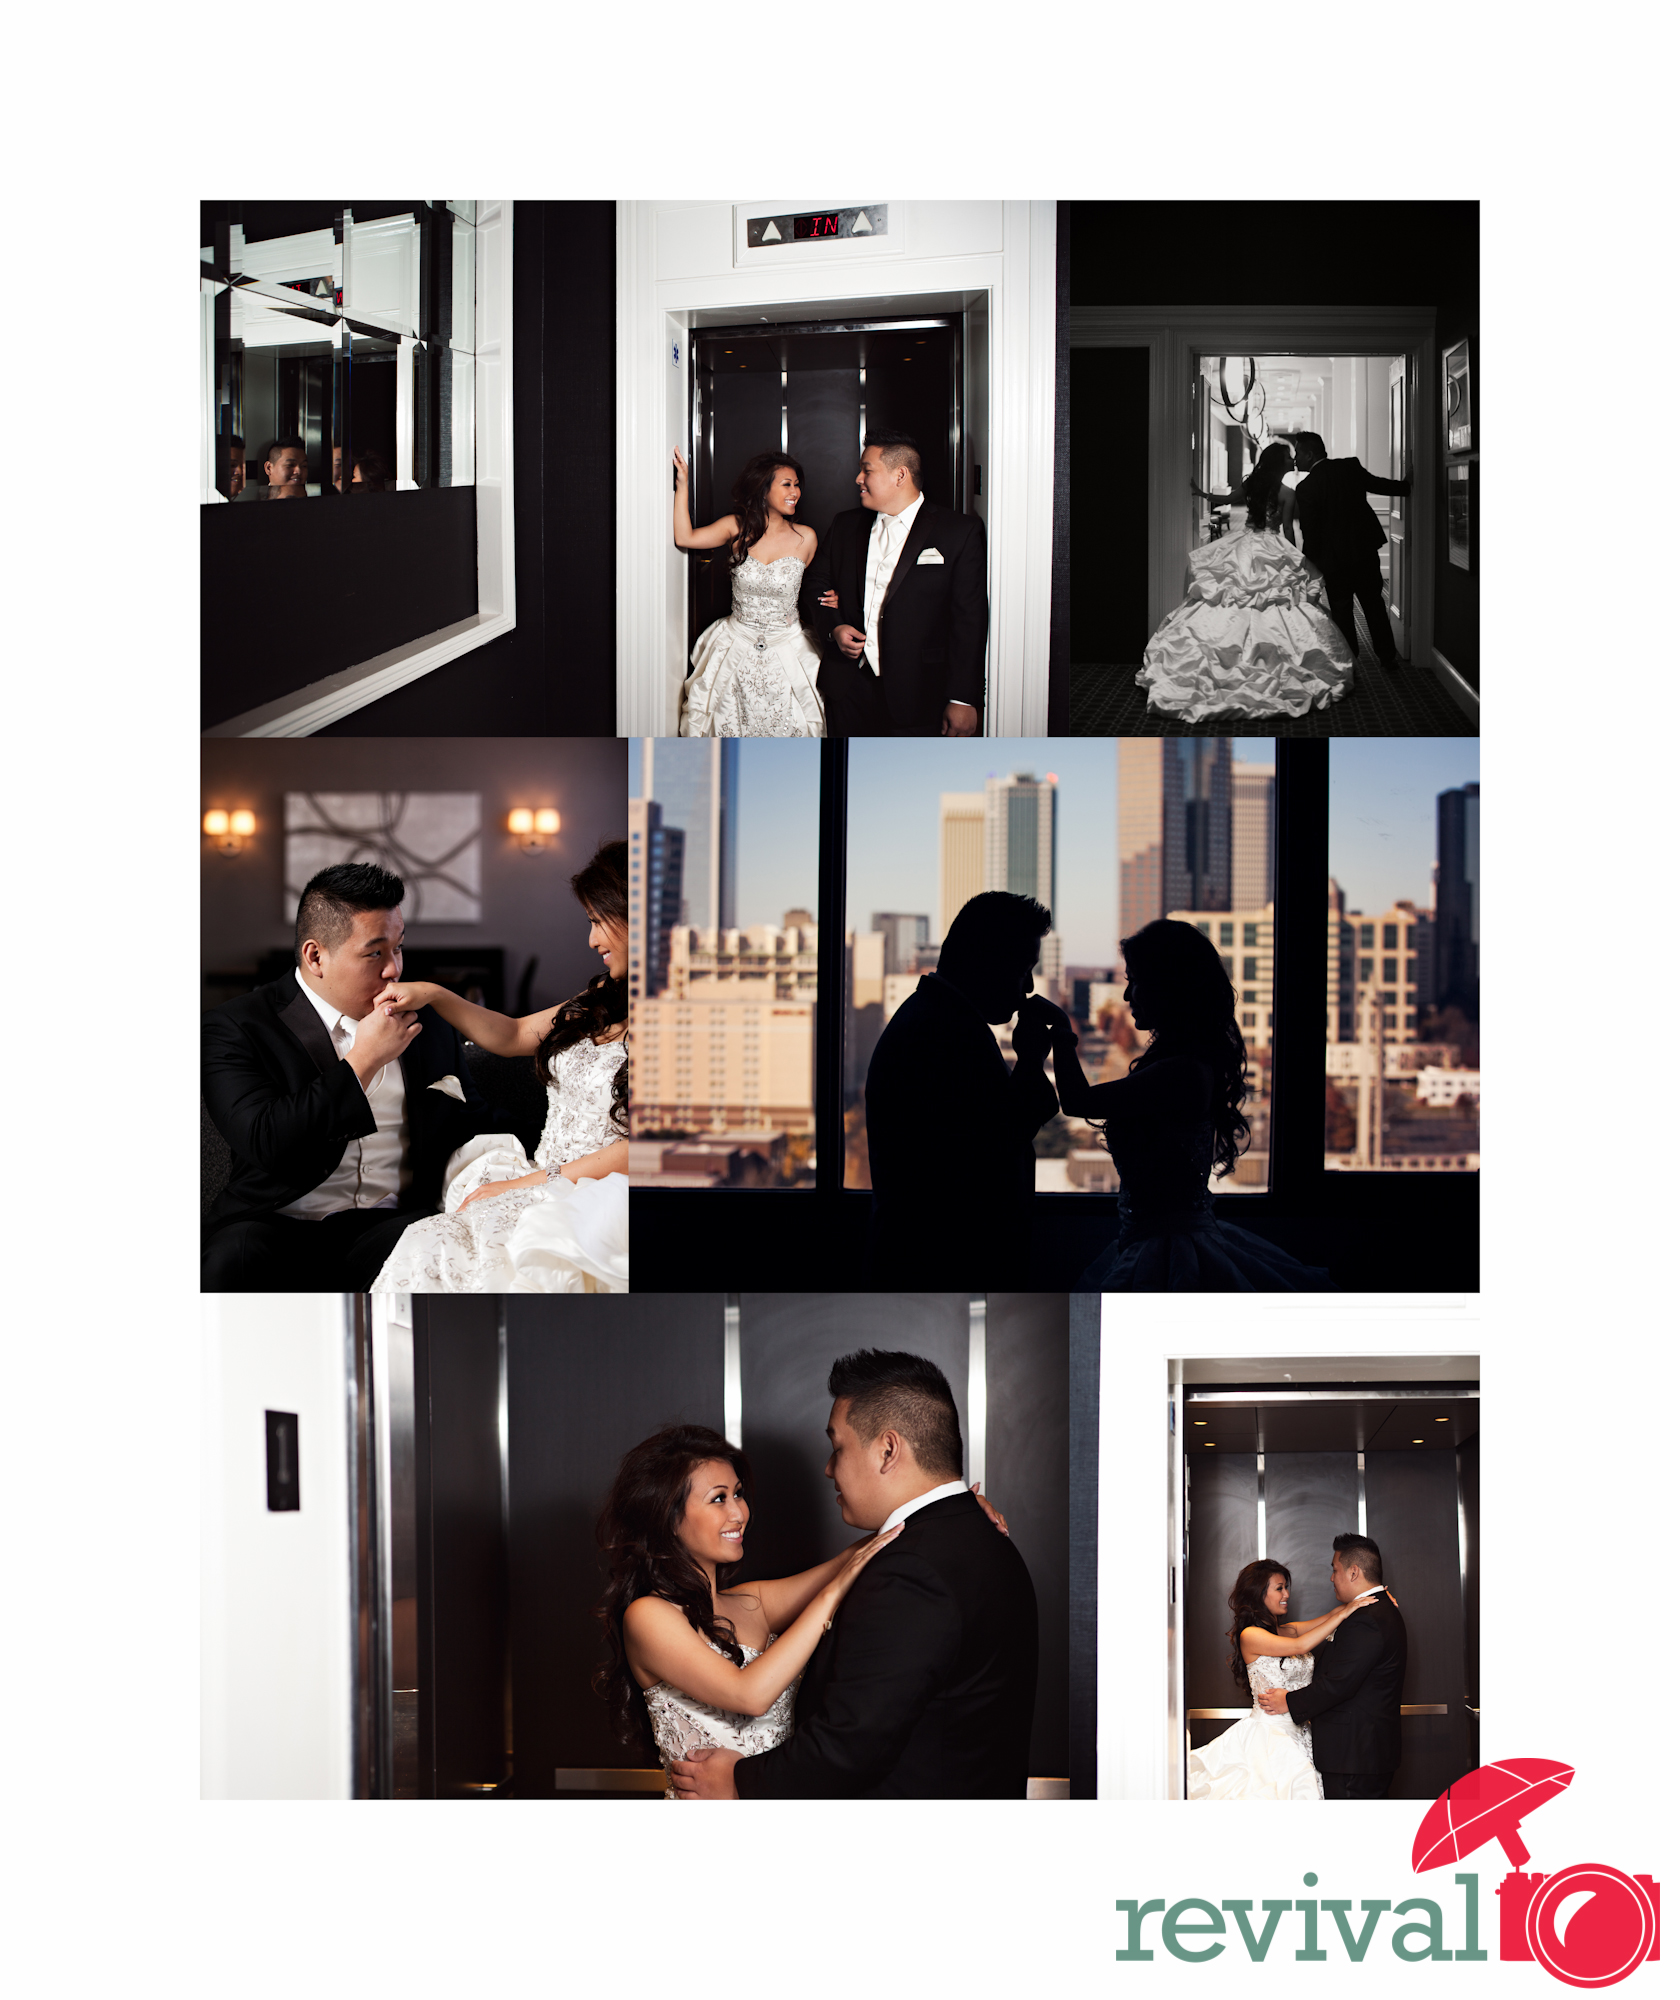 Photos by Revival Photography Hmong-American American-Hmong Wedding in Charlotte NC